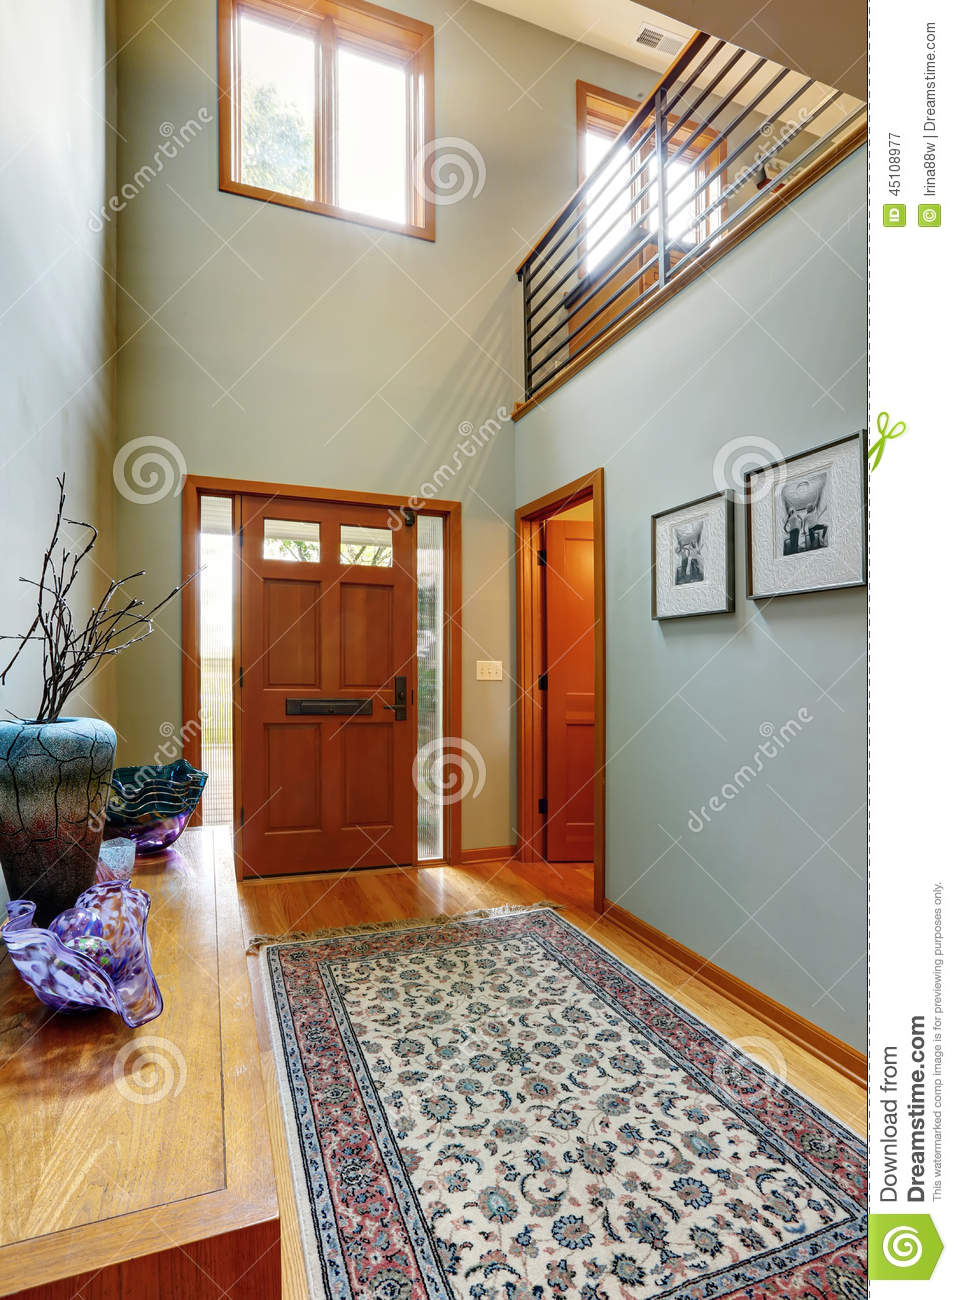 Entrance hallway in modern house stock photo image 45108977 - Interiores de casa modernas ...